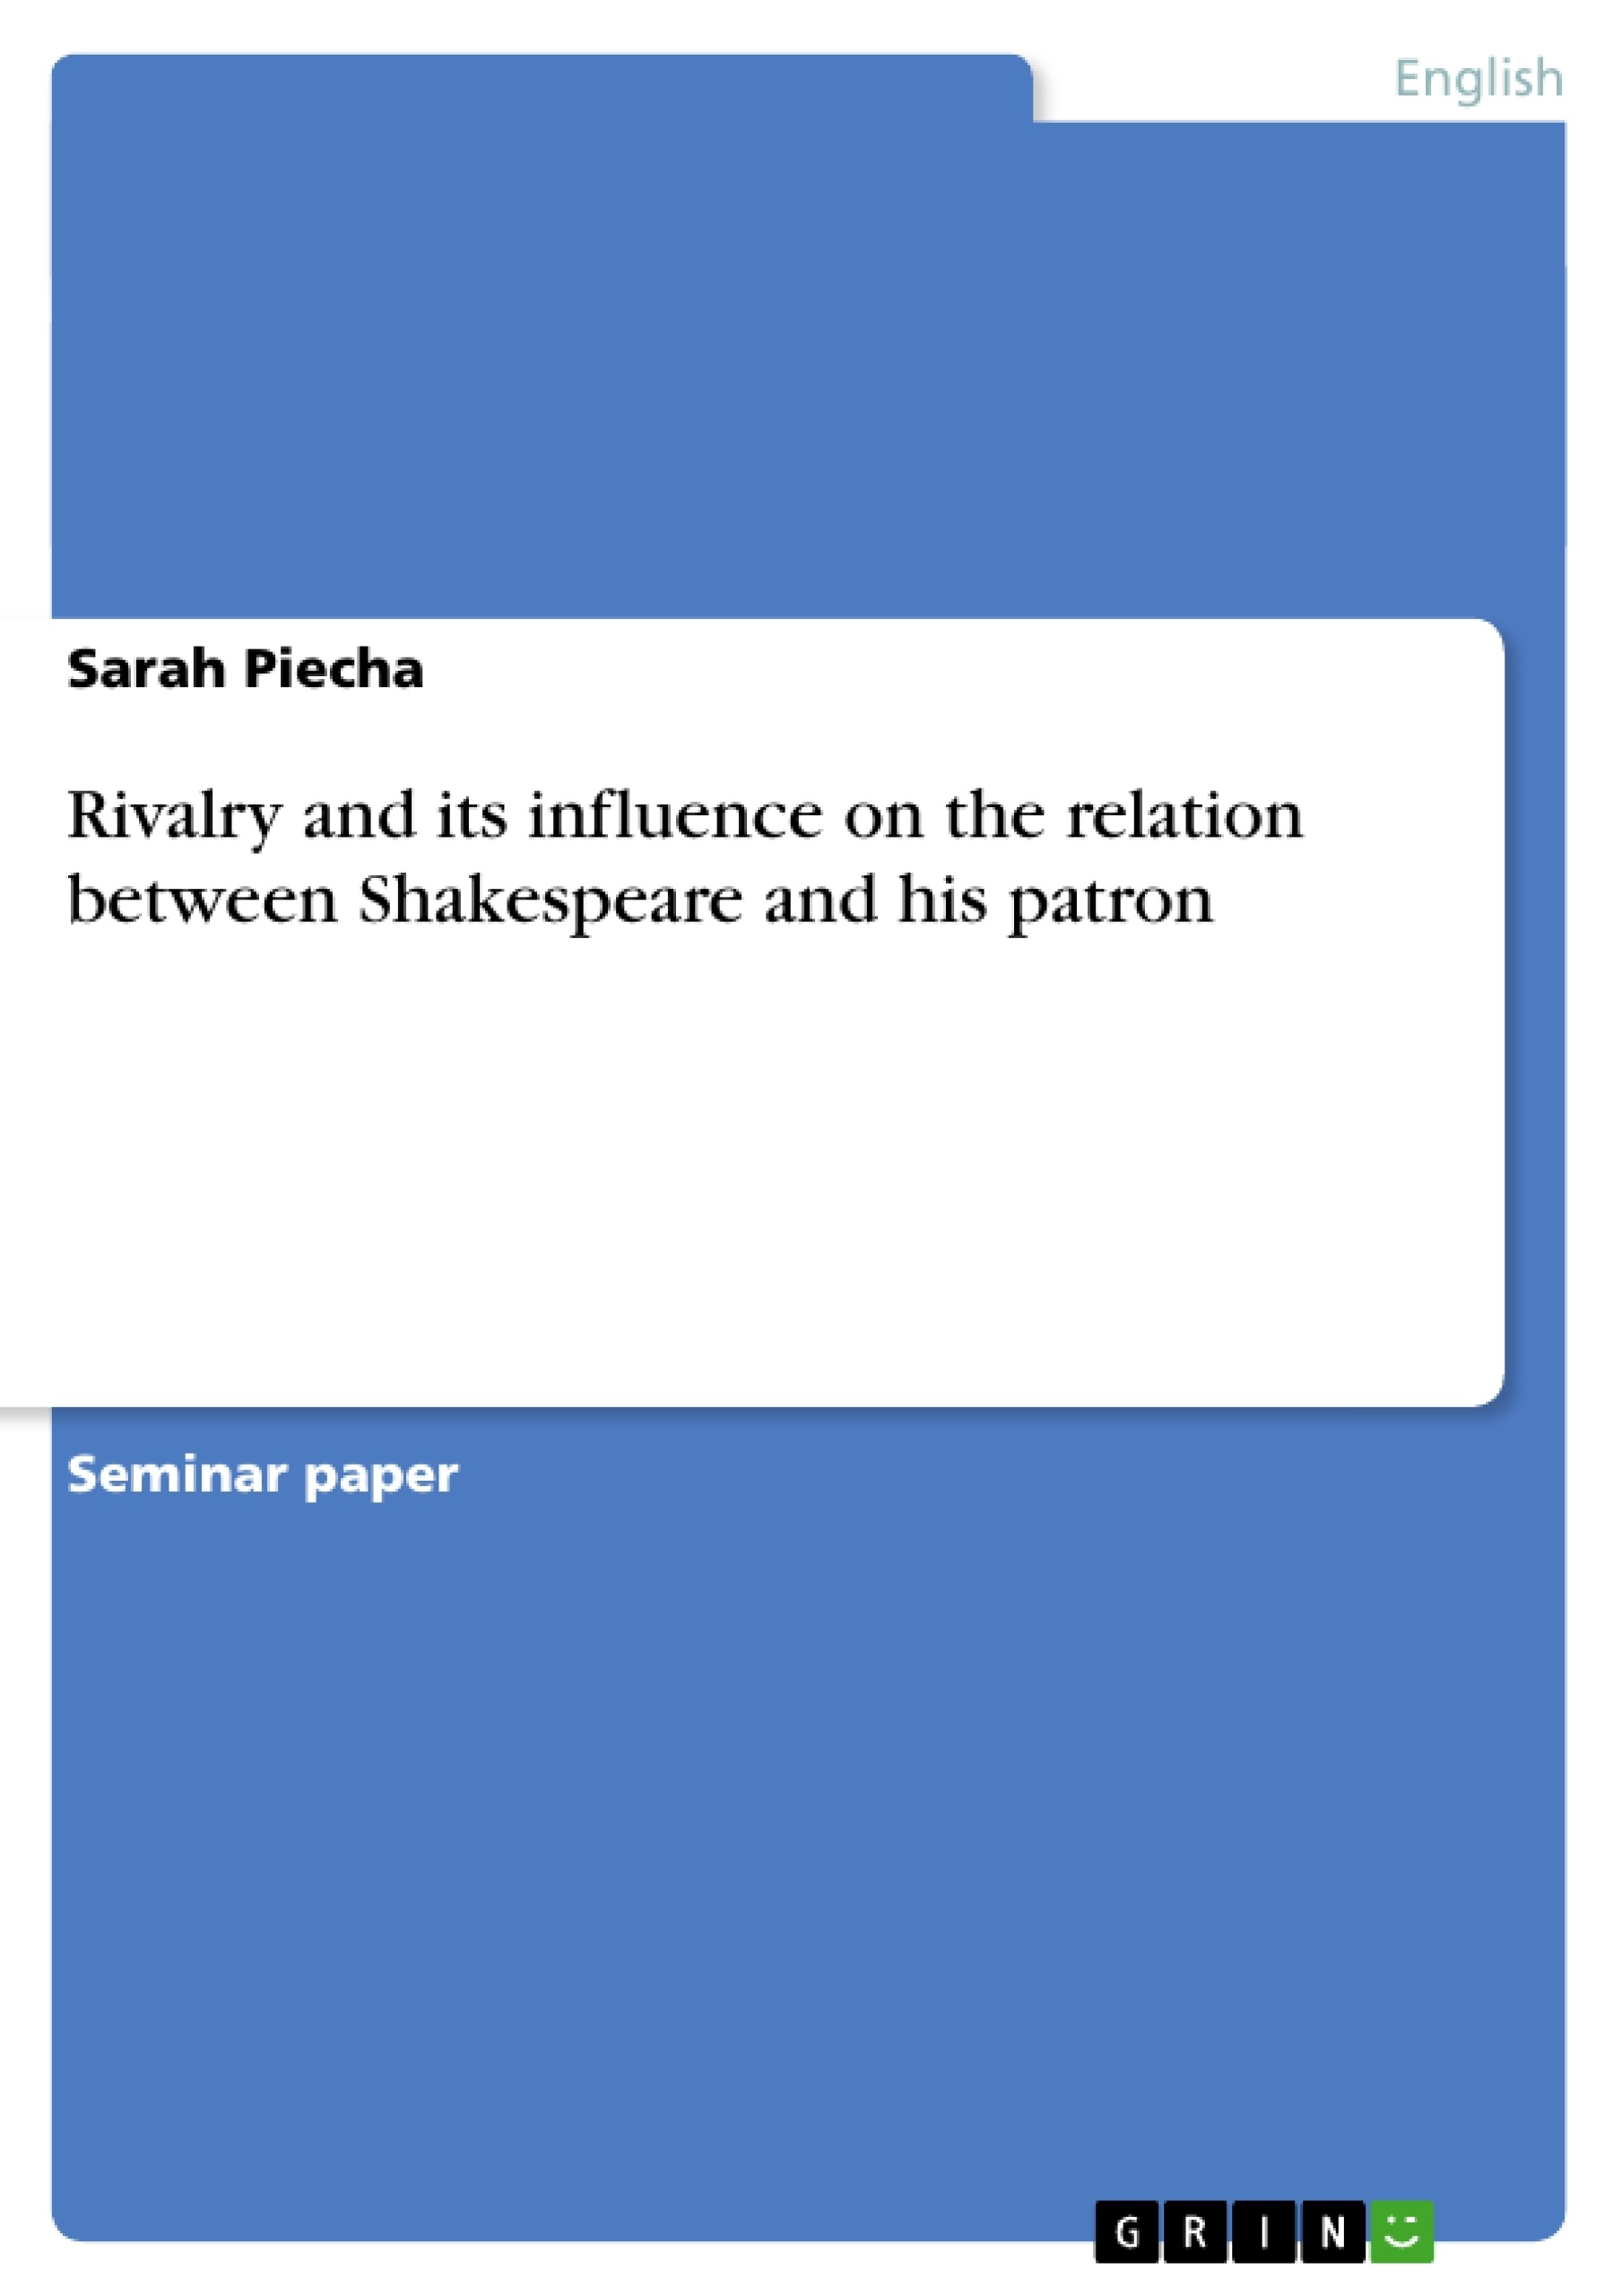 Title: Rivalry and its influence on the relation between Shakespeare and his patron